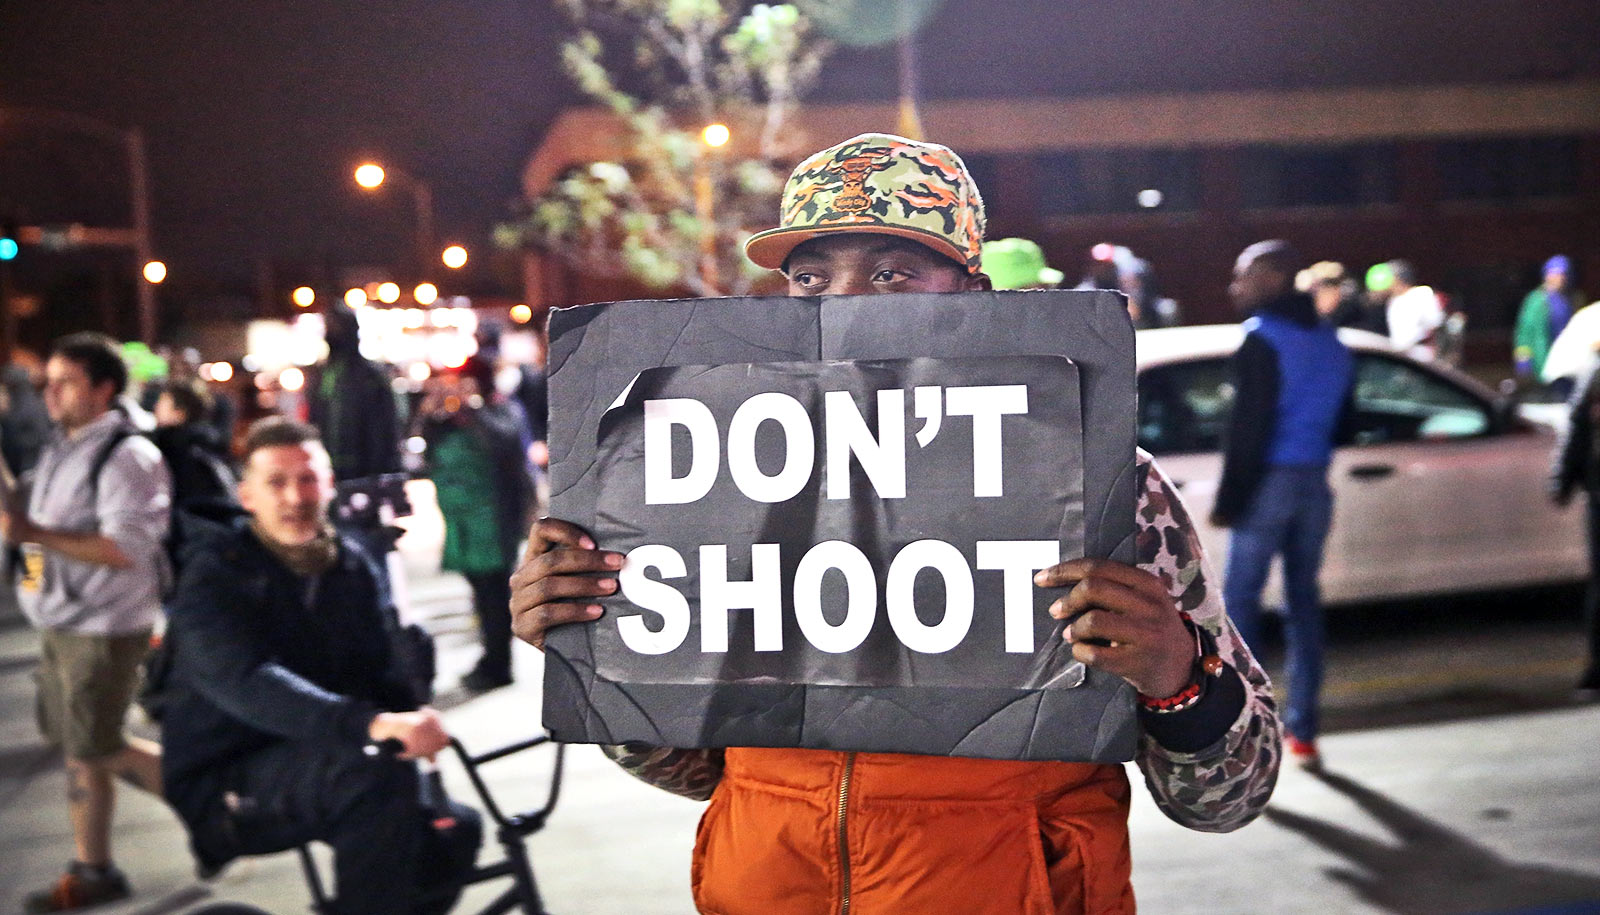 an analysis of the acceptance of blacks in white american And yet even as we are confronted with dramatic examples of ongoing racial  tensions, most white americans remain.